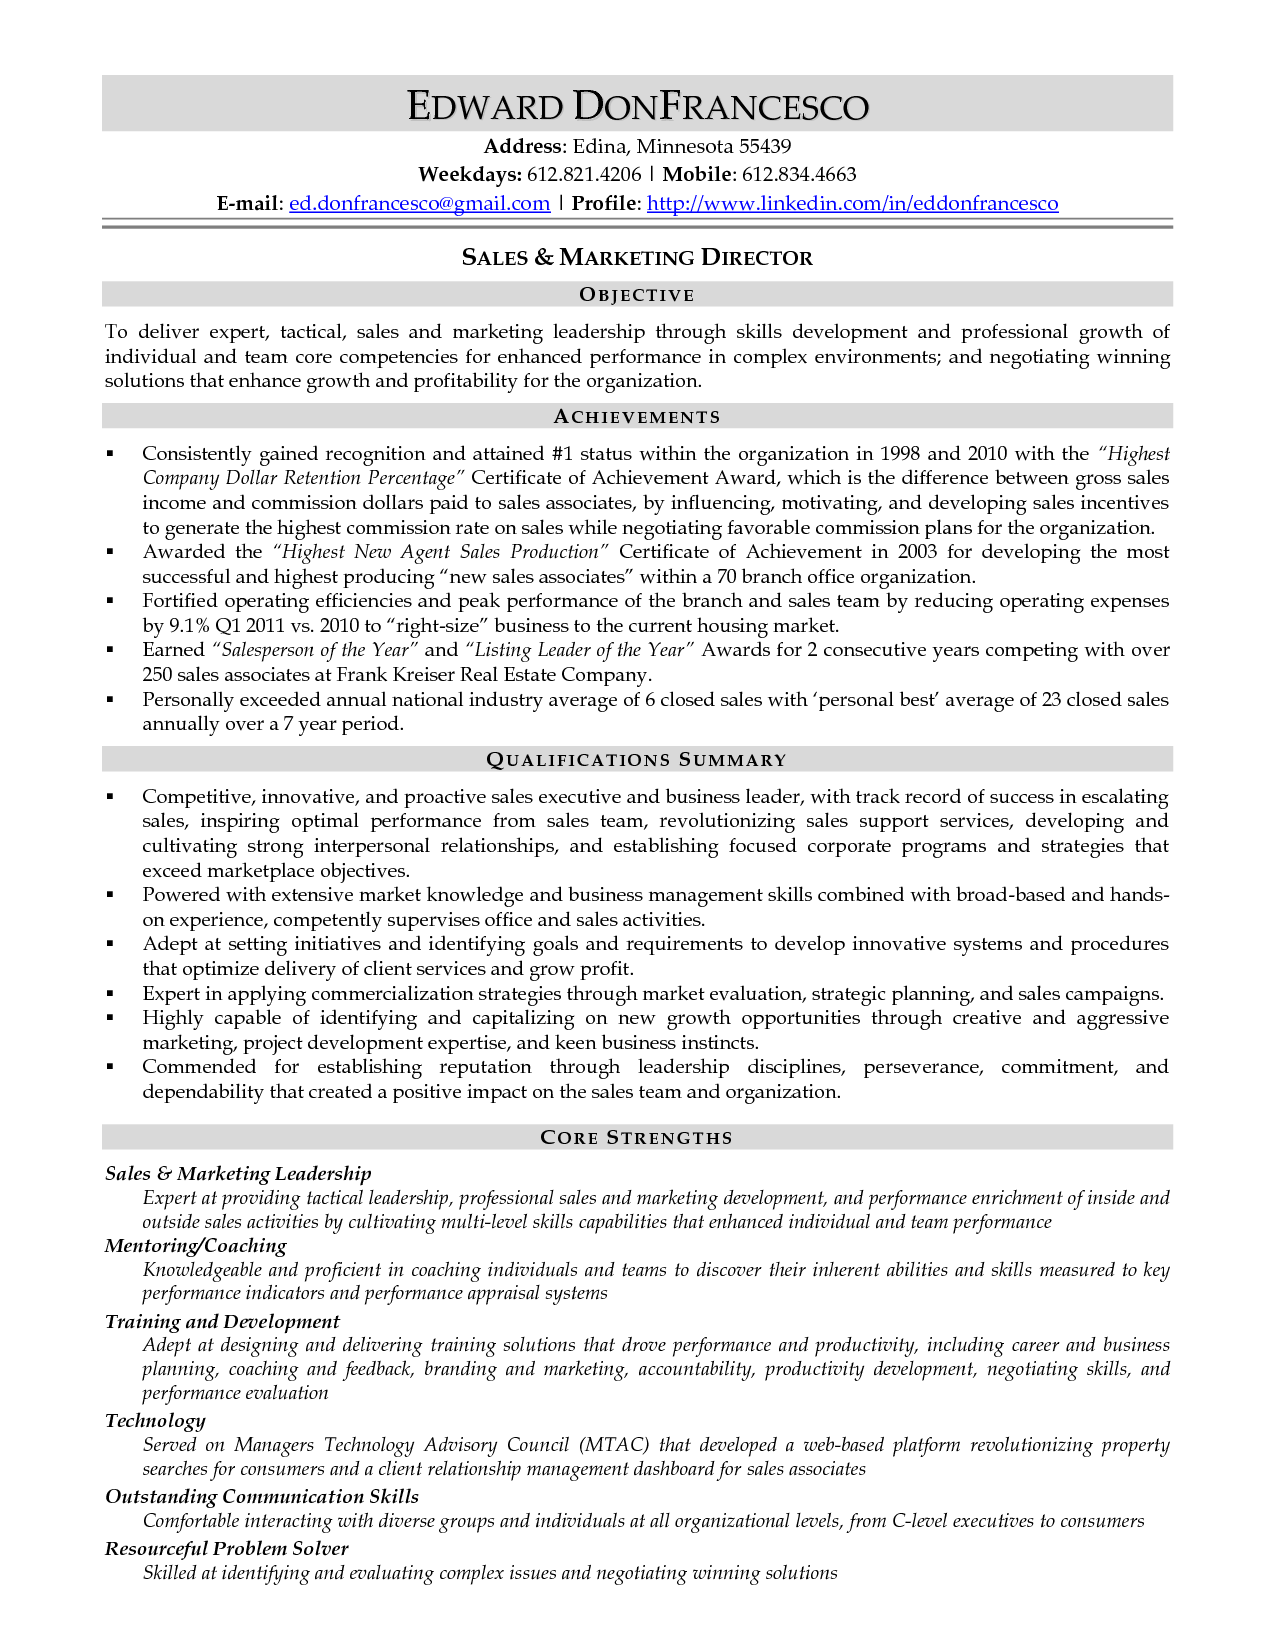 core qualifications on a resume